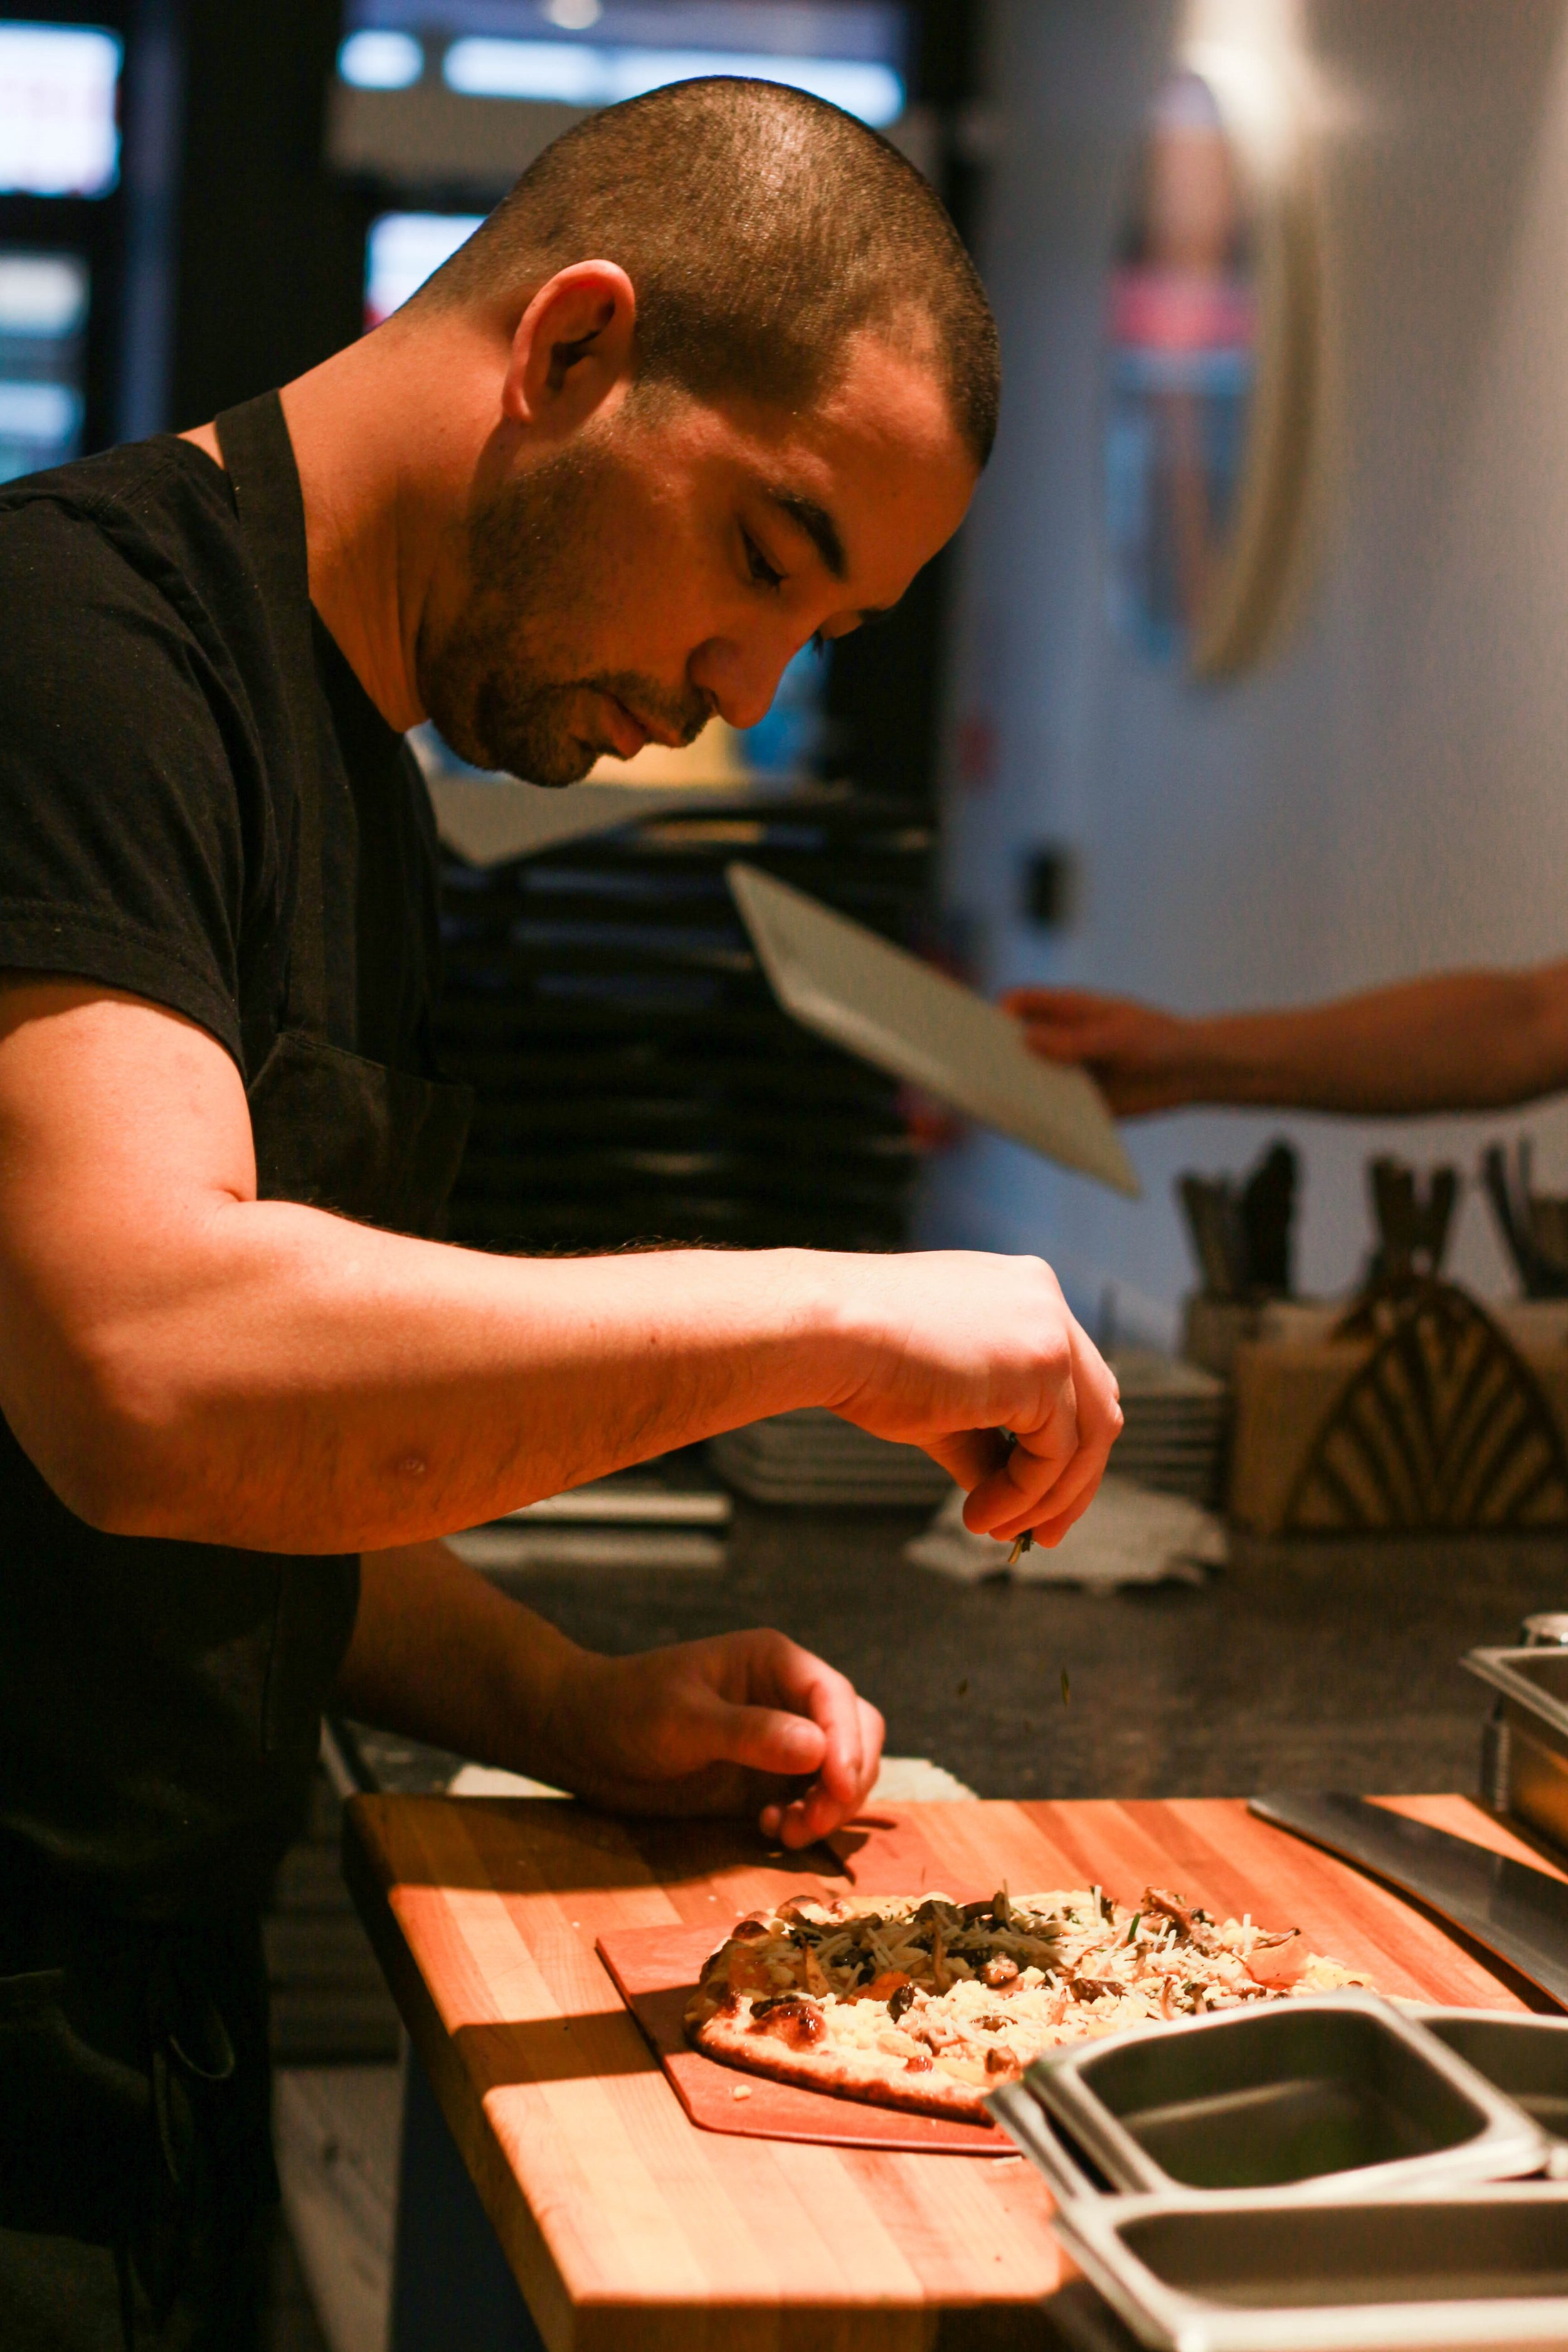 Head chef Aaron Okada deftly garnishes the Toronto-exclusive pizza, The Harvest, with a sprinkle of plant-based parmesan cheese on a slow Saturday afternoon at Virtuous Pie. (The Unaffiliated Press/Kayla Zhu)